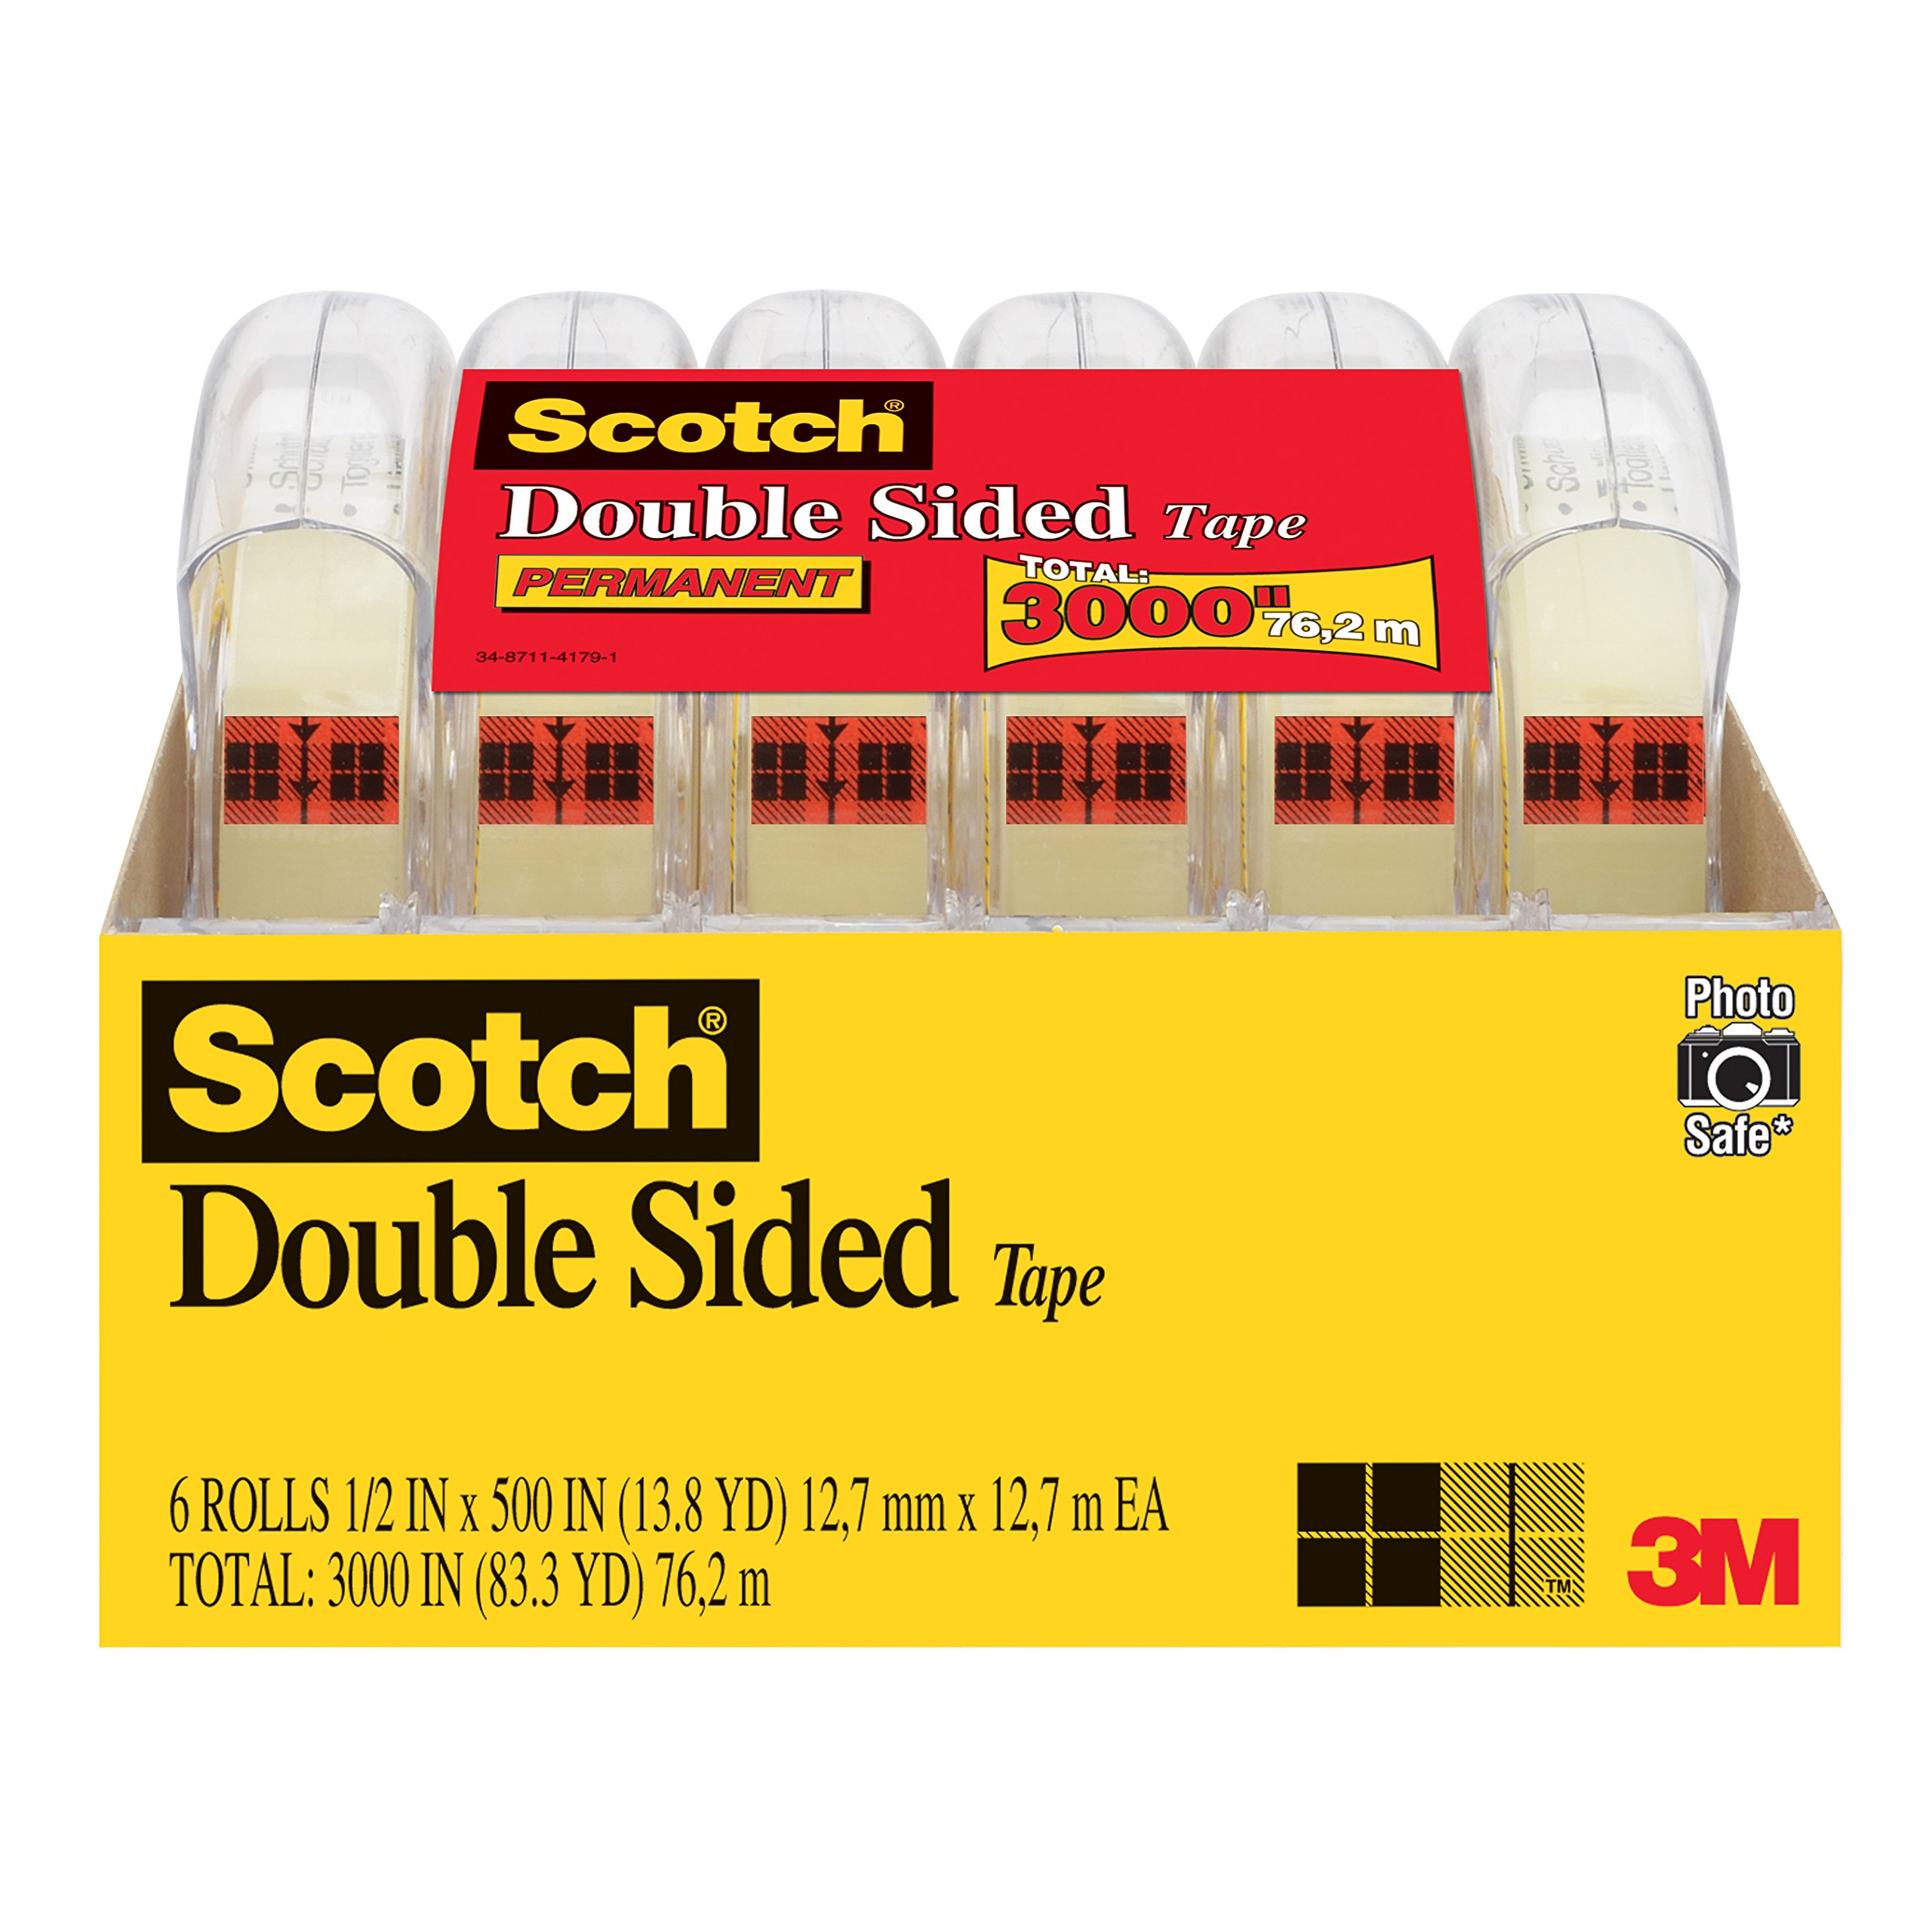 Scotch Brand Double Sided Tape, No Liner, Strong, Engineered for Office and Home Use, 1/2 x 500 Inches, 6 Dispensered Rolls (6137H-2PC-MP) by Scotch Brand